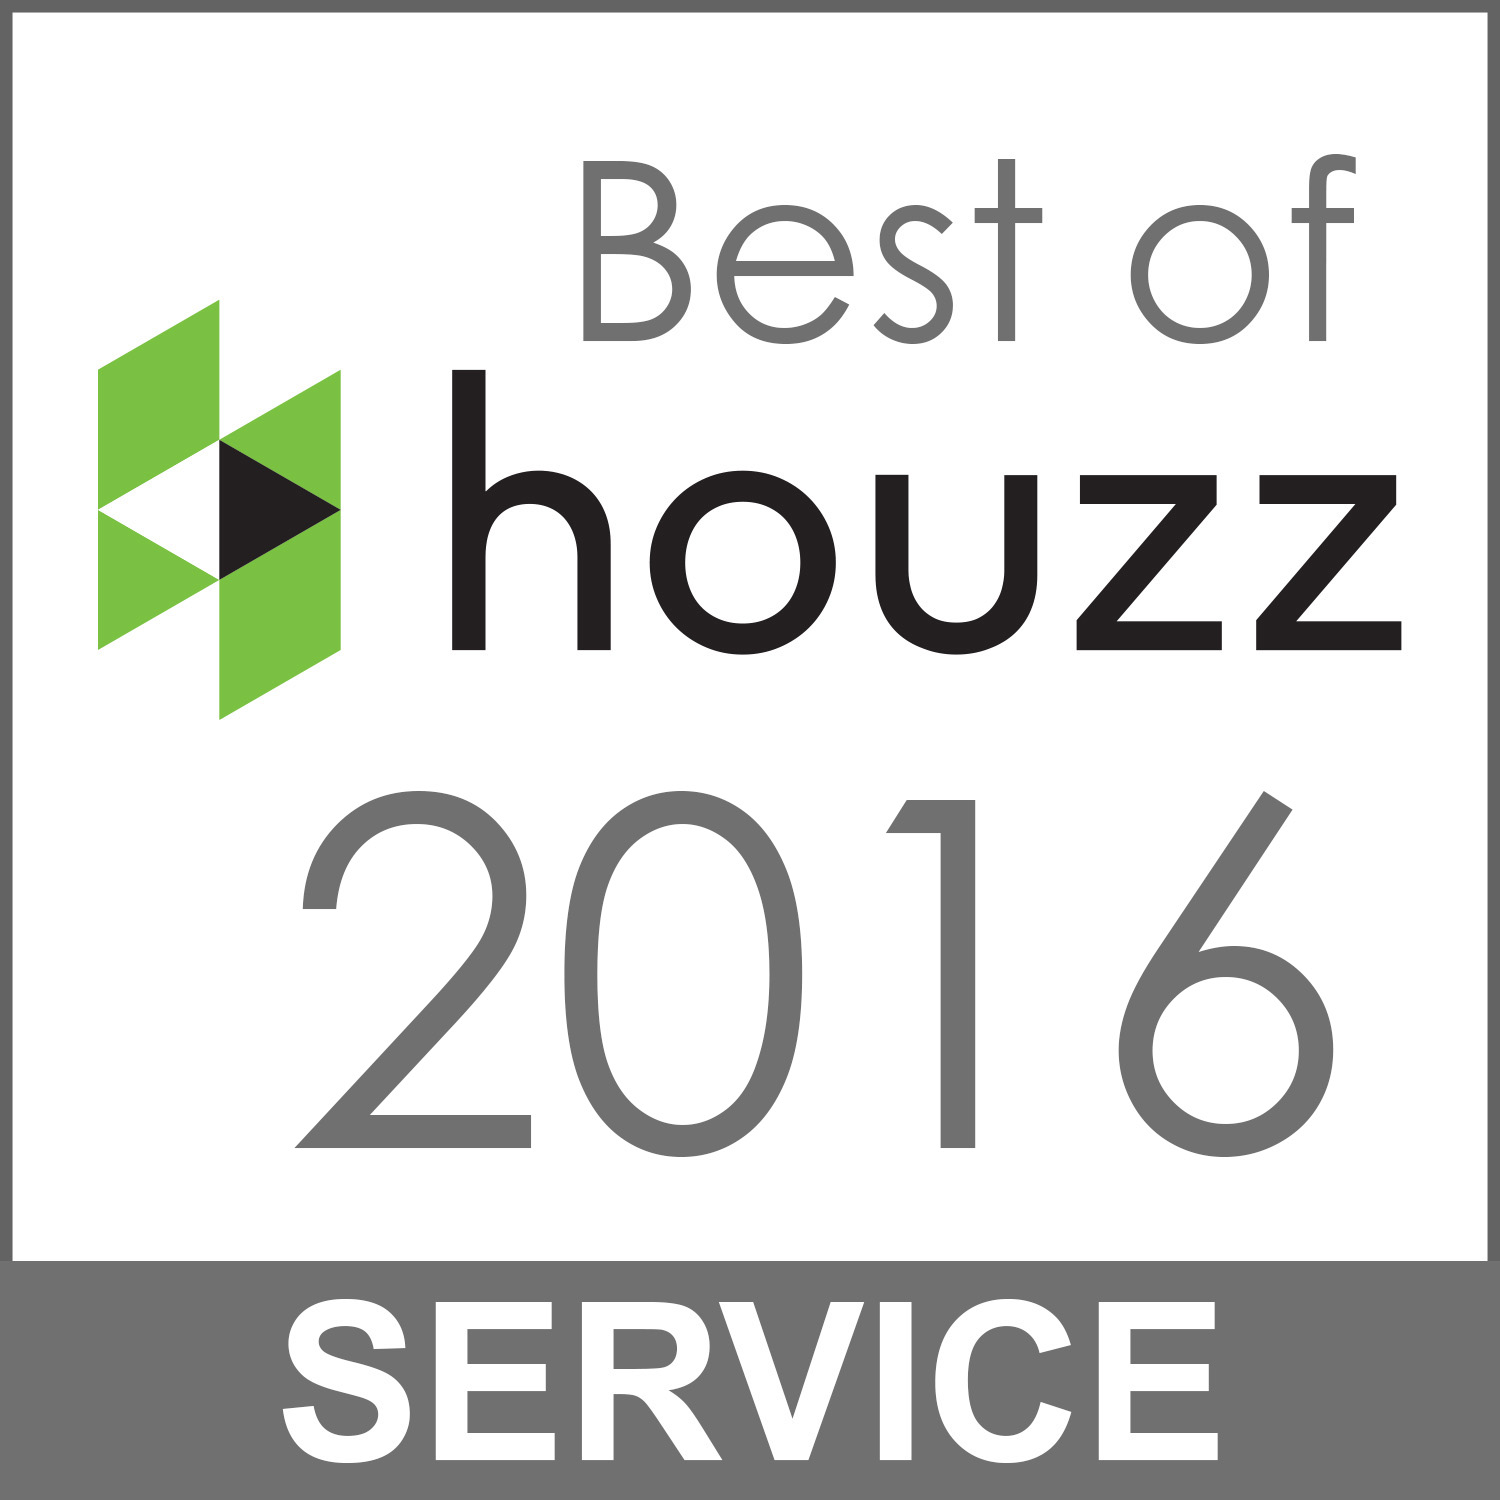 2016 winner best of houzz badge indoor-outdoor kitchen designer joan bigg westchester ny